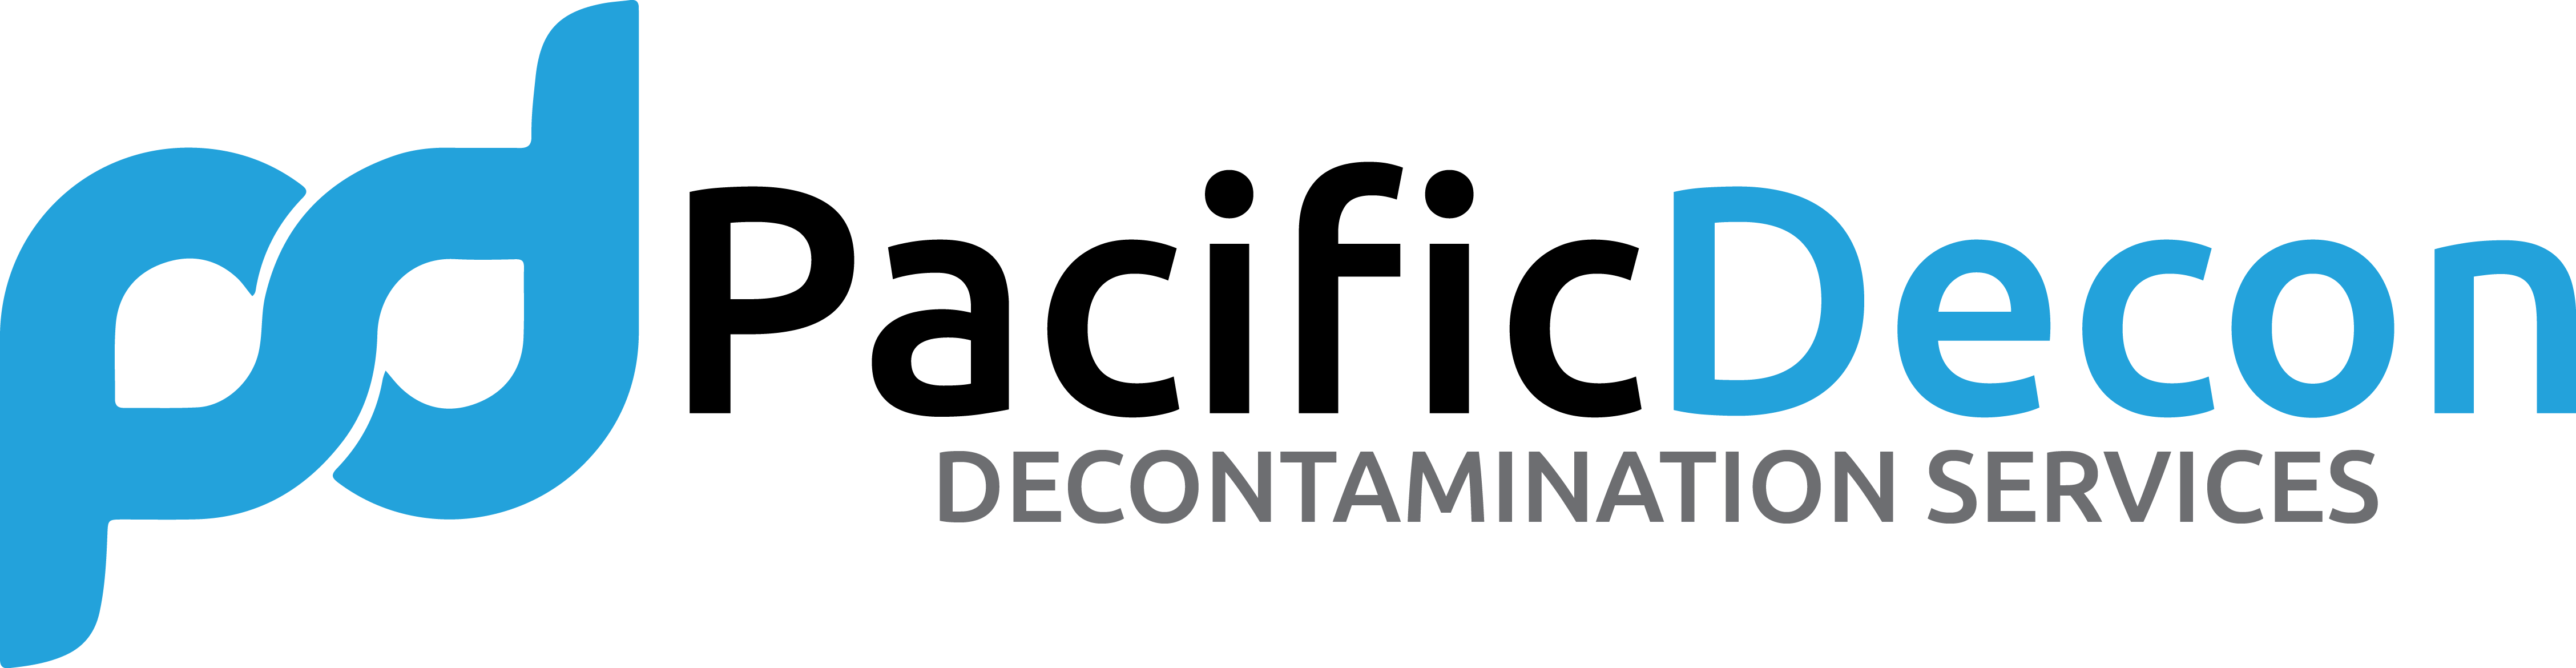 Decontamination and disinfection service logo